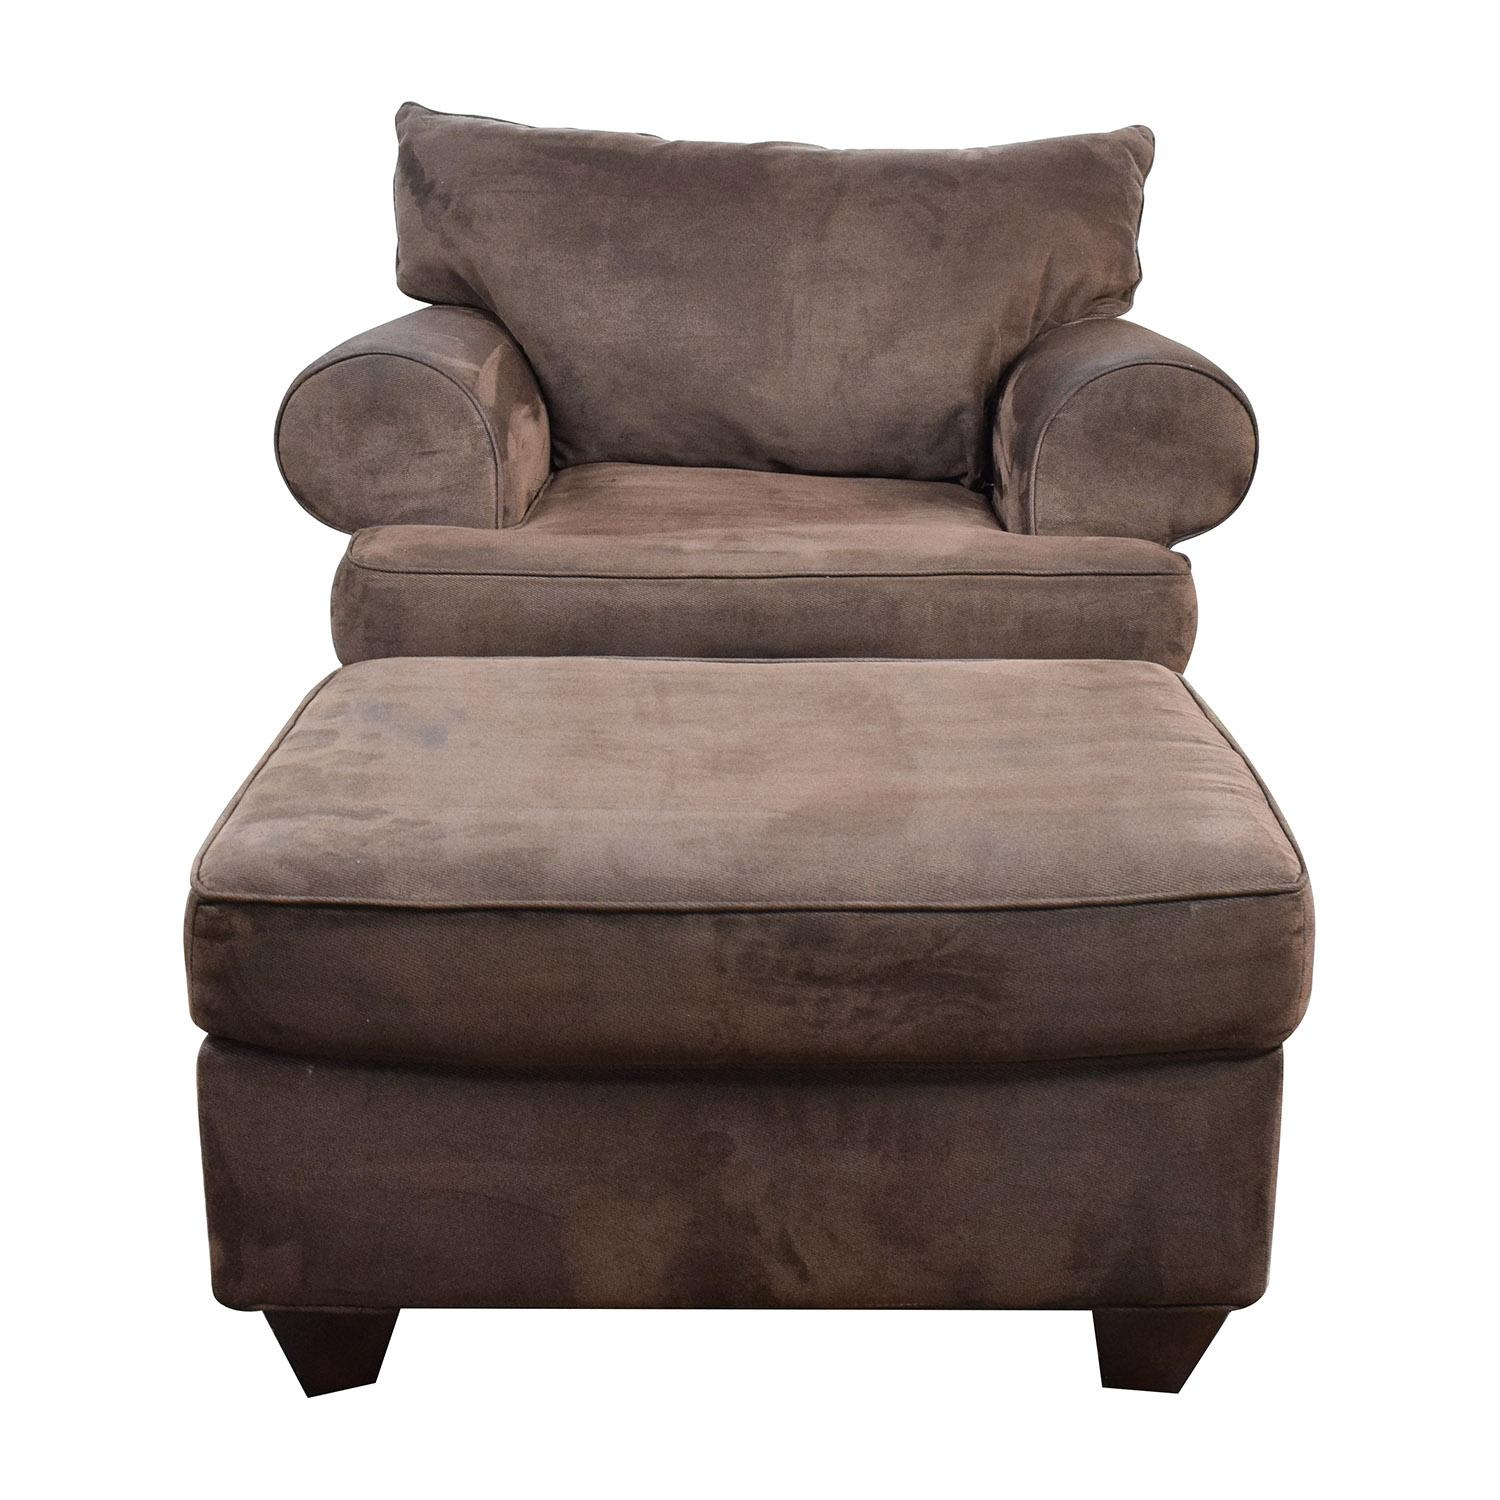 67% Off – Dark Brown Sofa Chair With Ottoman / Chairs Regarding Sofa Chair And Ottoman (View 4 of 20)